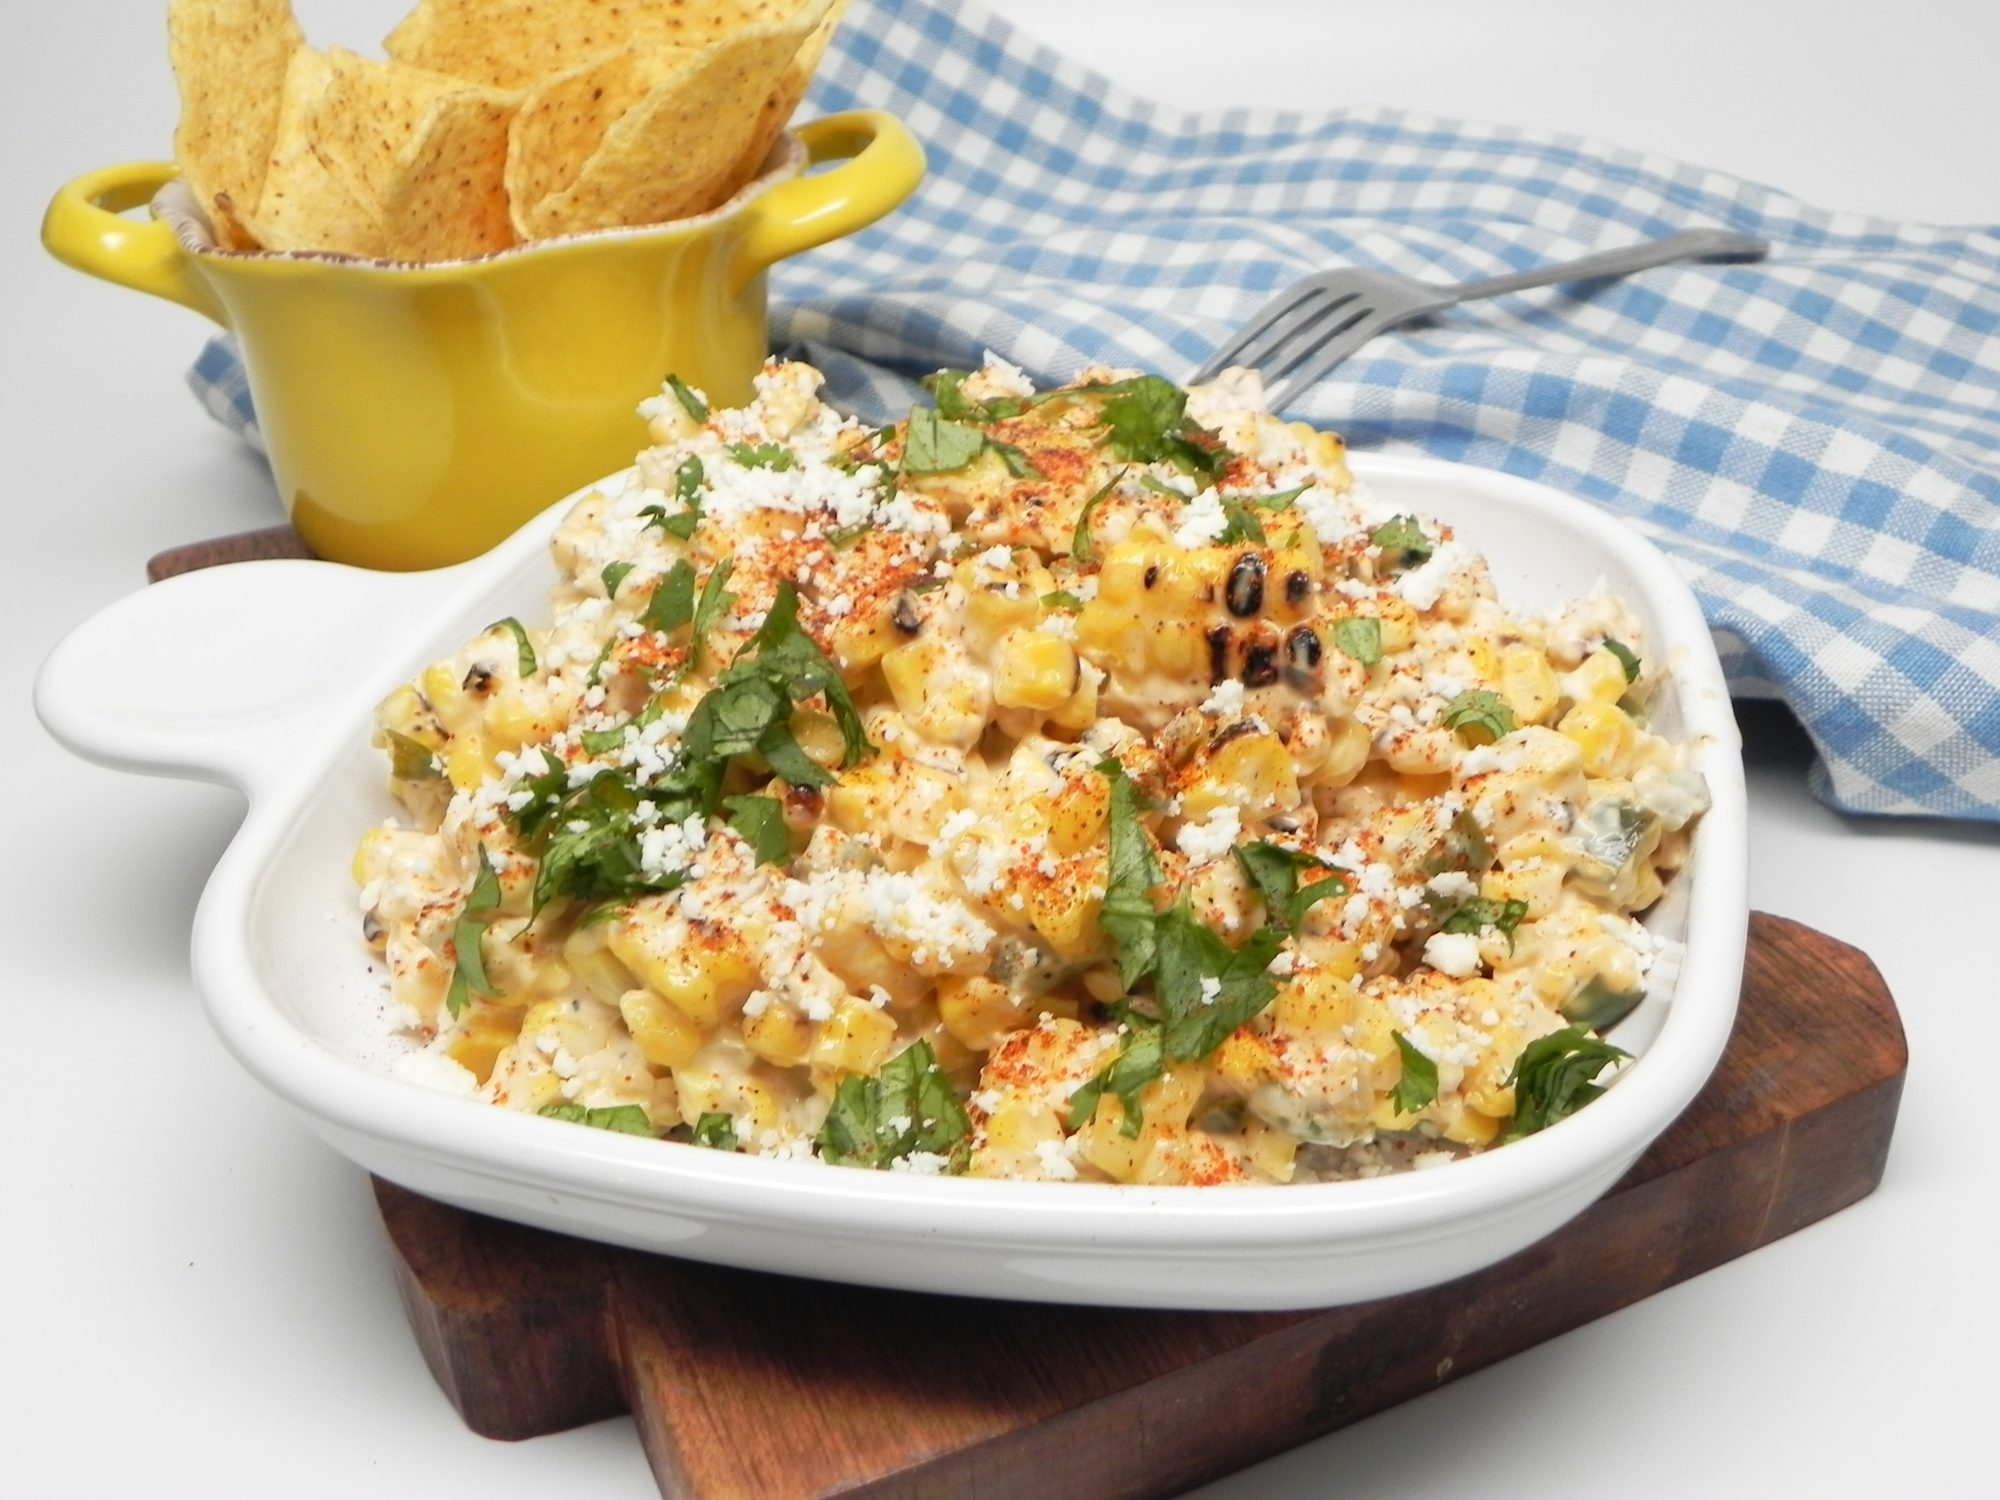 creamy grillec ron dip with cheese, spices, and cilantro in bowl next to chips